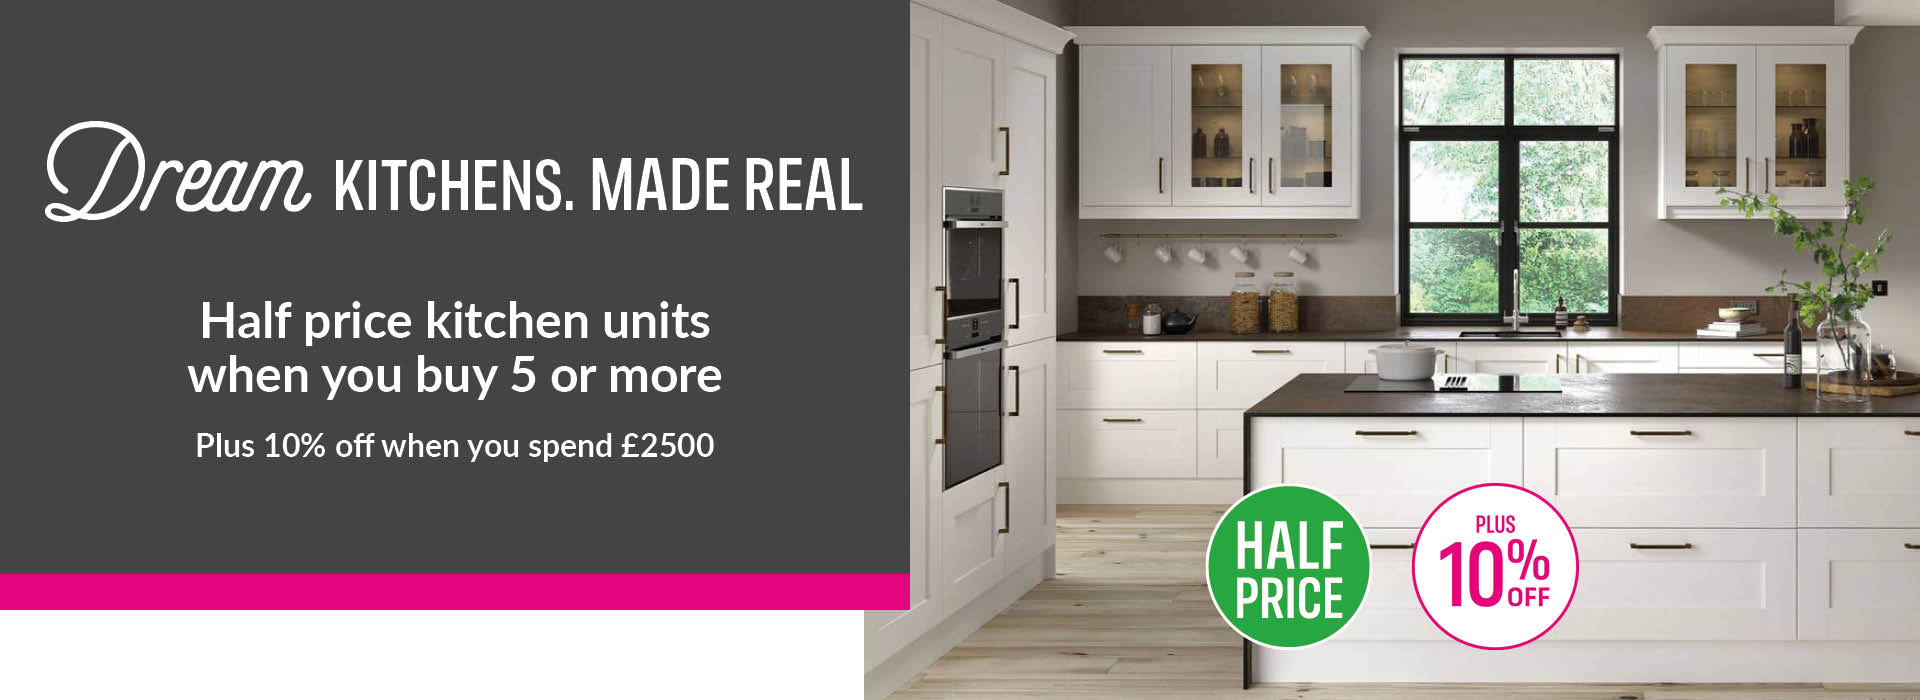 Dream Kitchens. Real Savings. Get 50% off when you kick off your kitchen renovation. Half price when you buy 5 or more units.